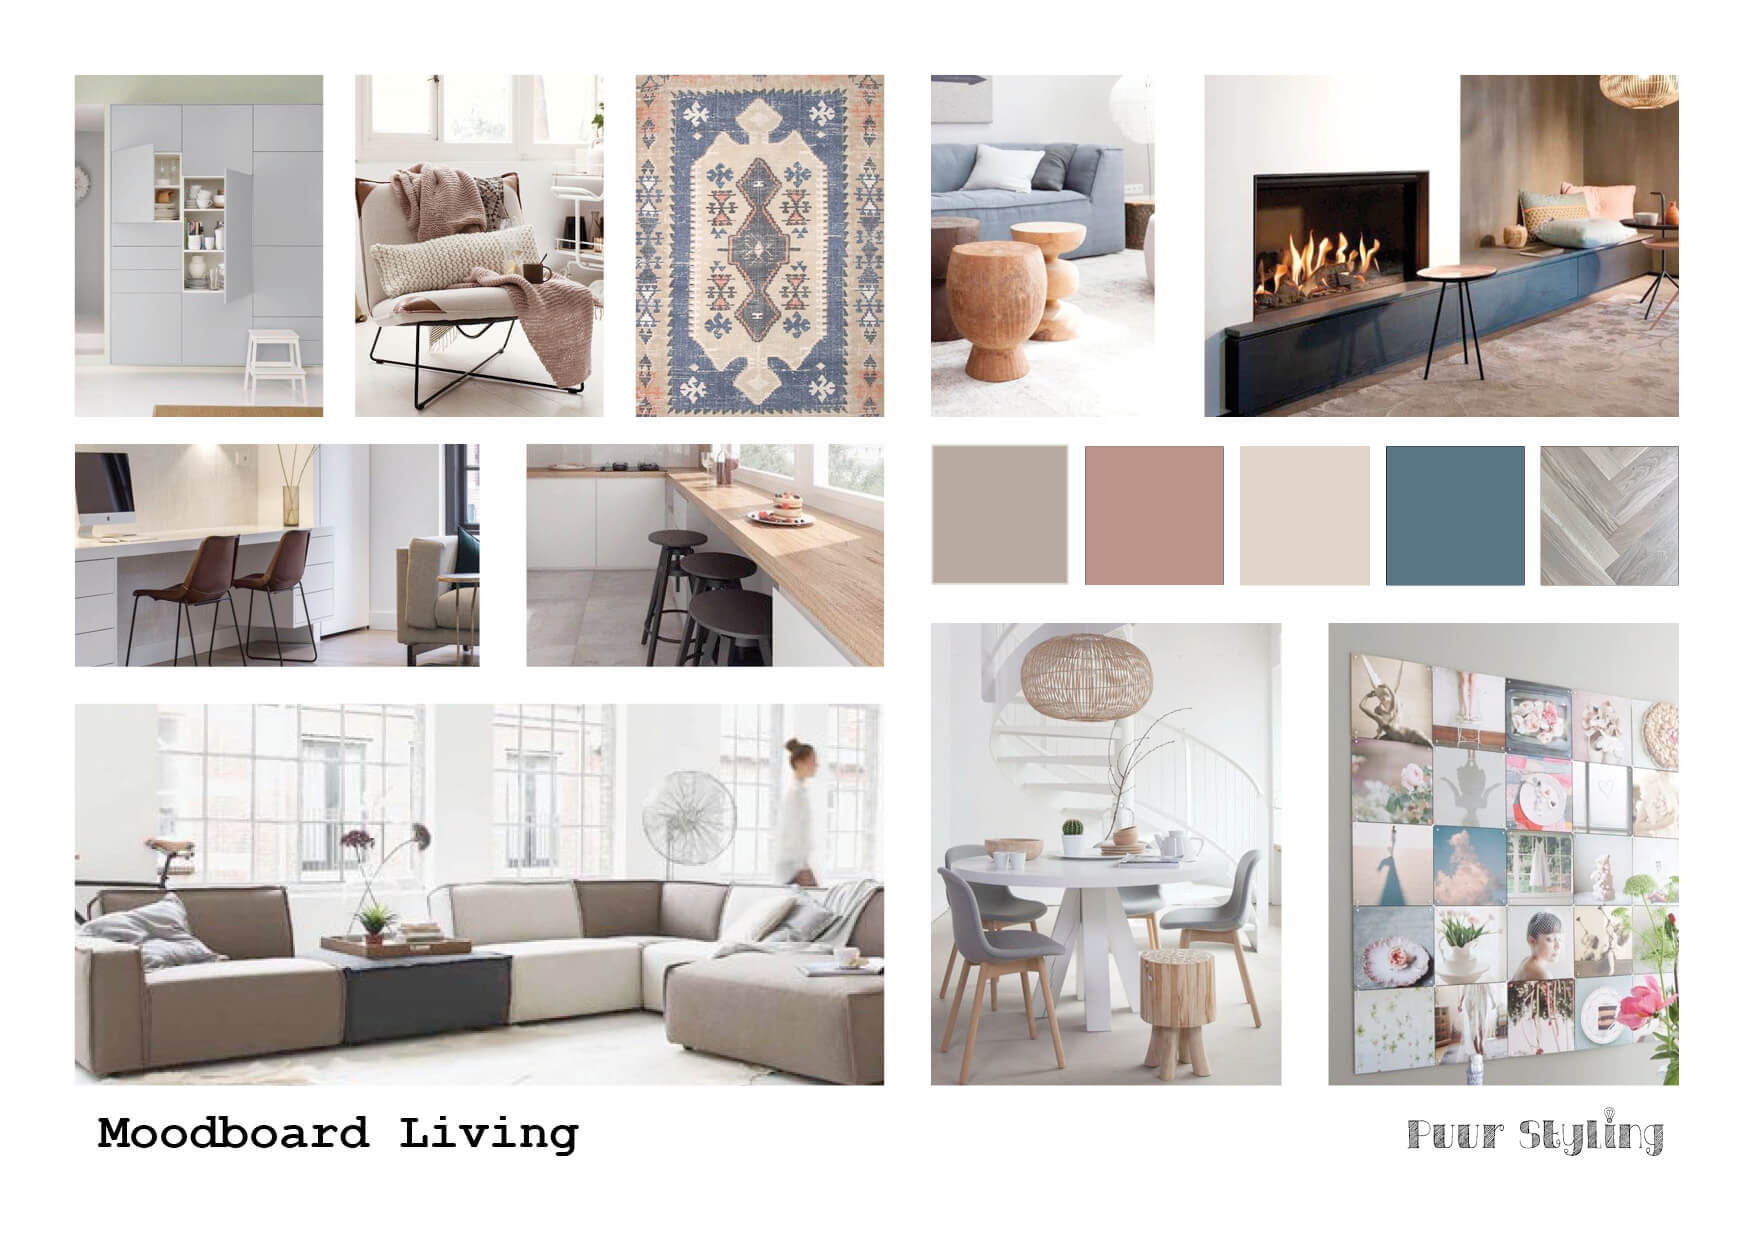 puur styling interieuradvies blauw moodboard